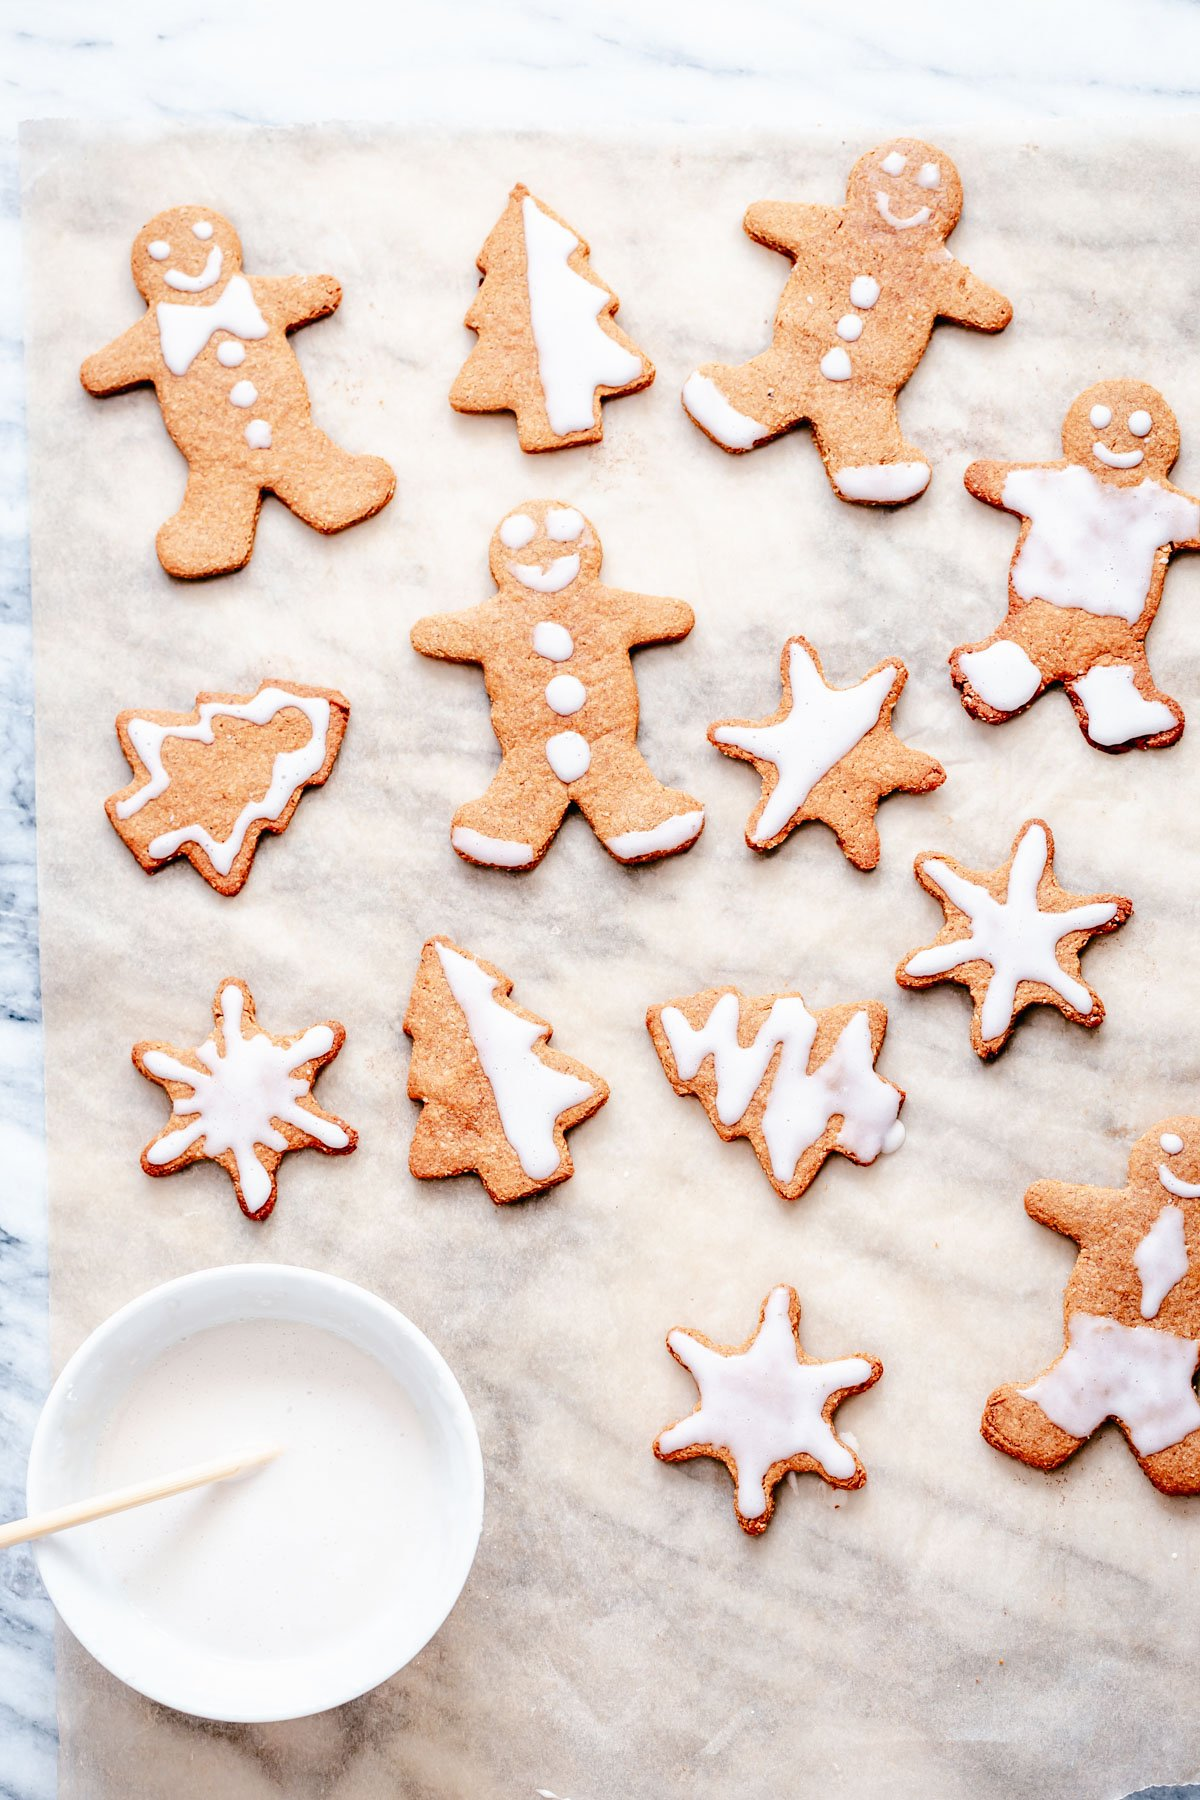 iced vegan gingerbread men, stars and tree shaped cookies on a sheet of parchment paper